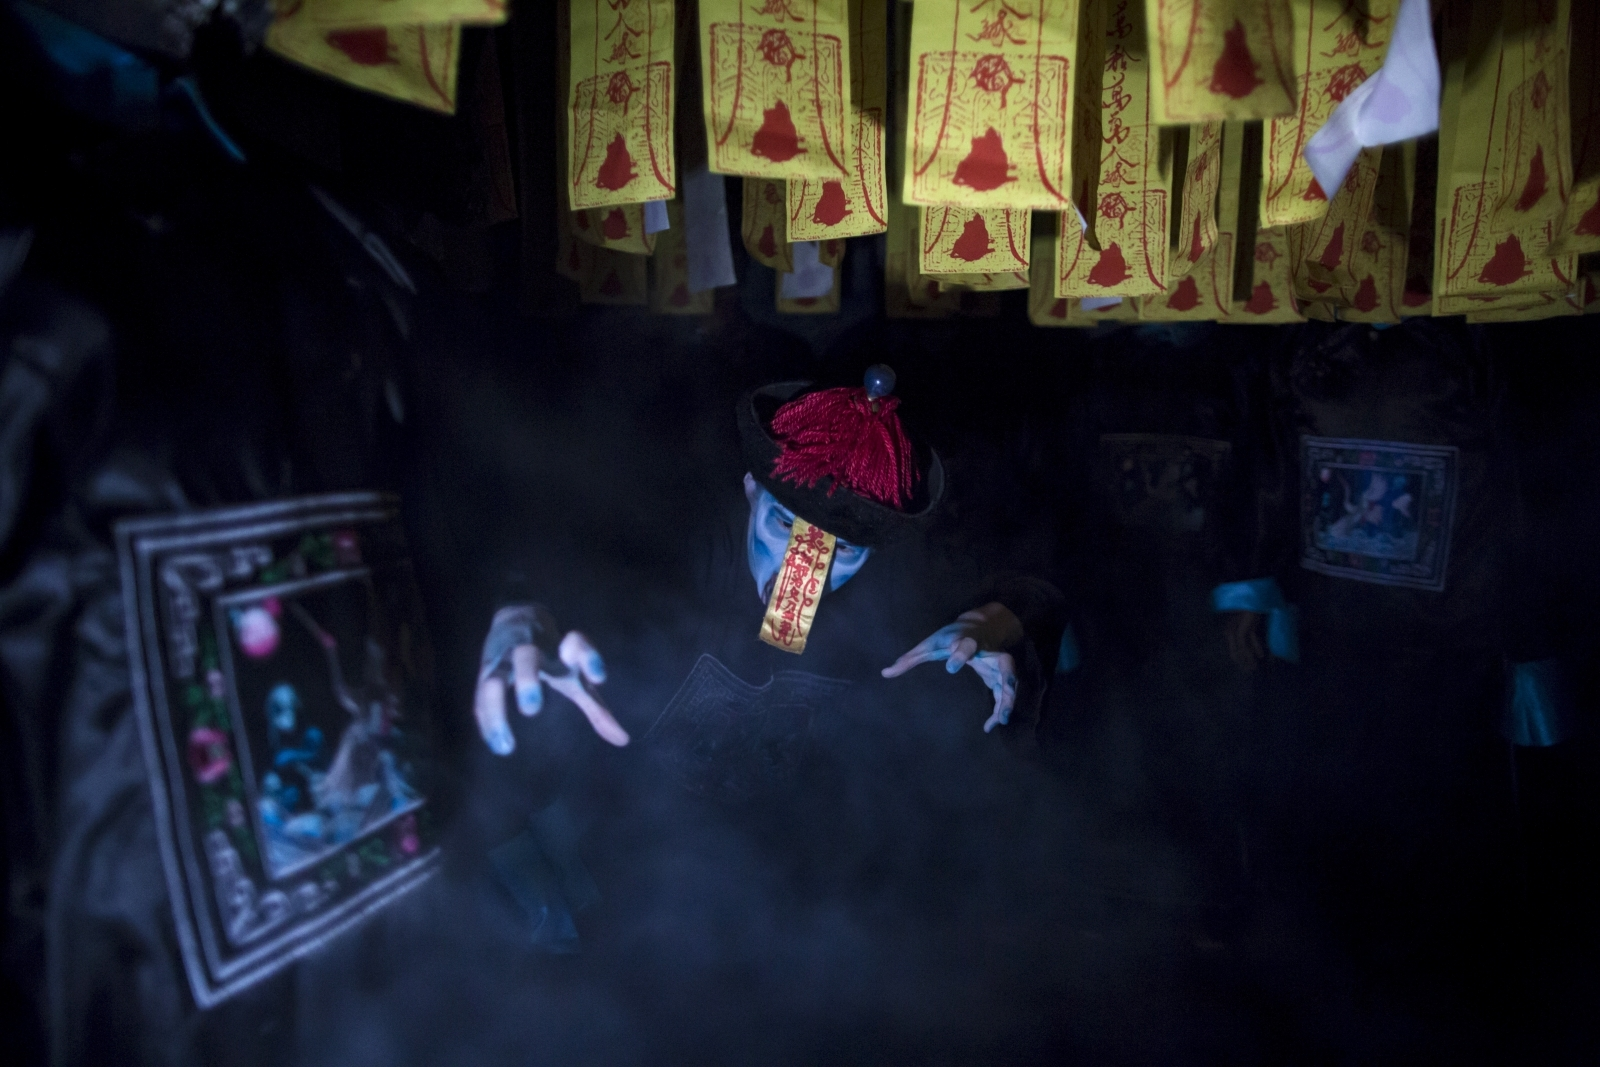 Man dies in haunted house accident in Hong Kong's Ocean Park